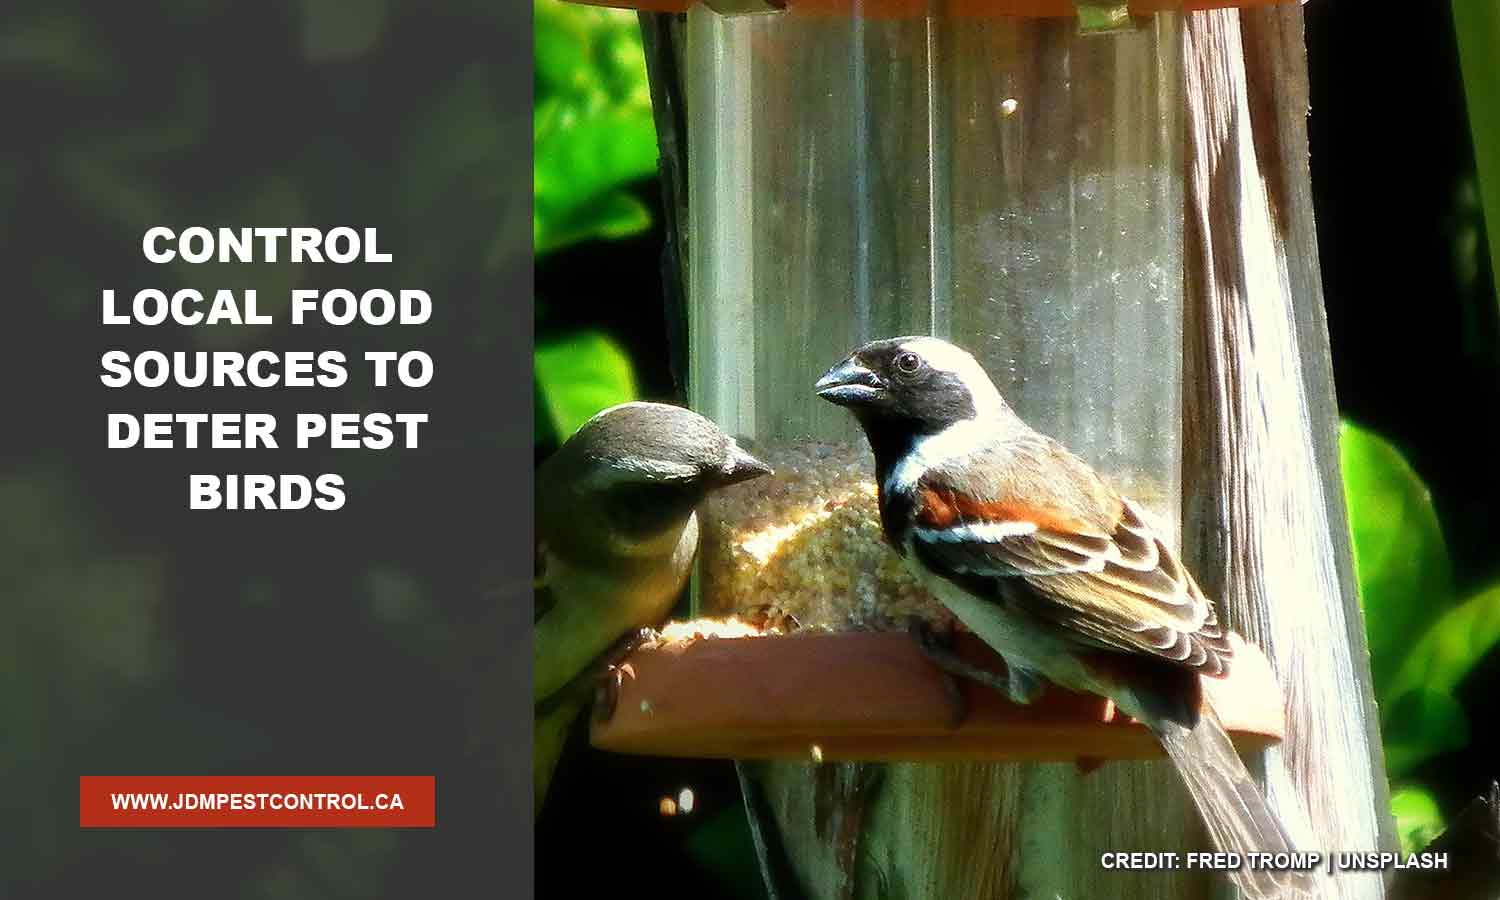 Control local food sources to deter pest birds